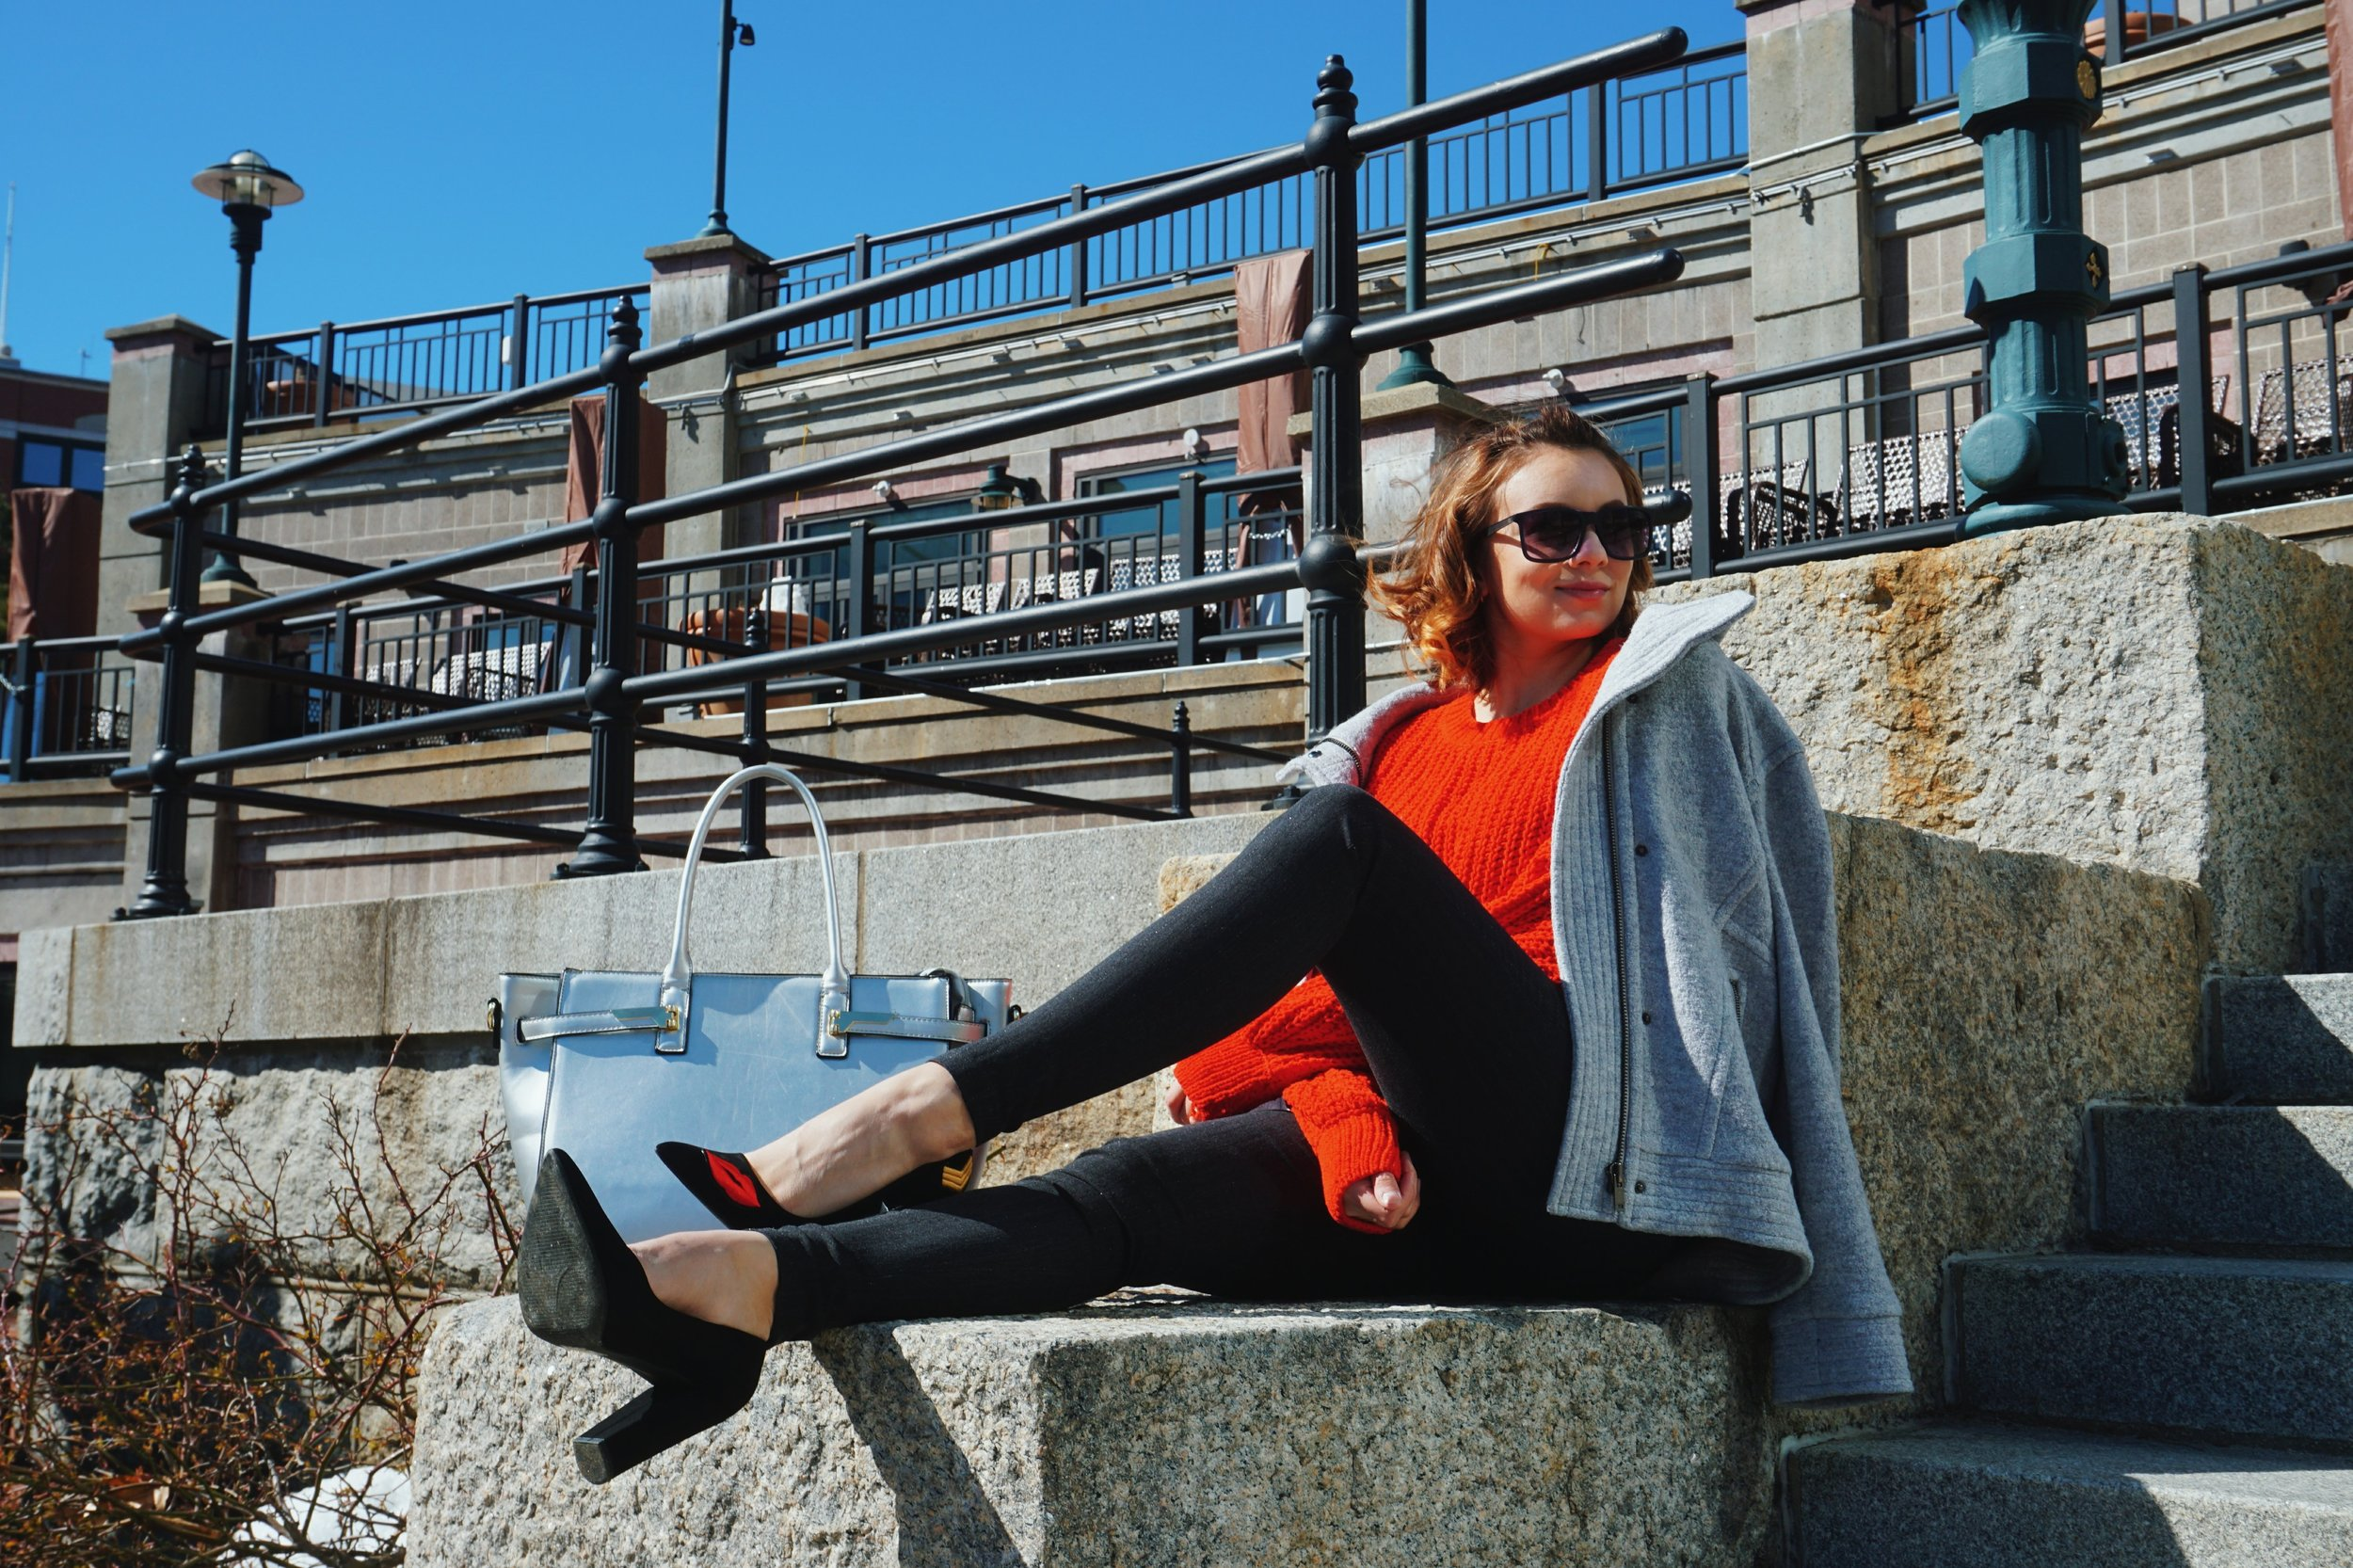 A girl sitting on concrete steps, wearing a red chunky sweater, gray coat, gray pants, and black pumps.